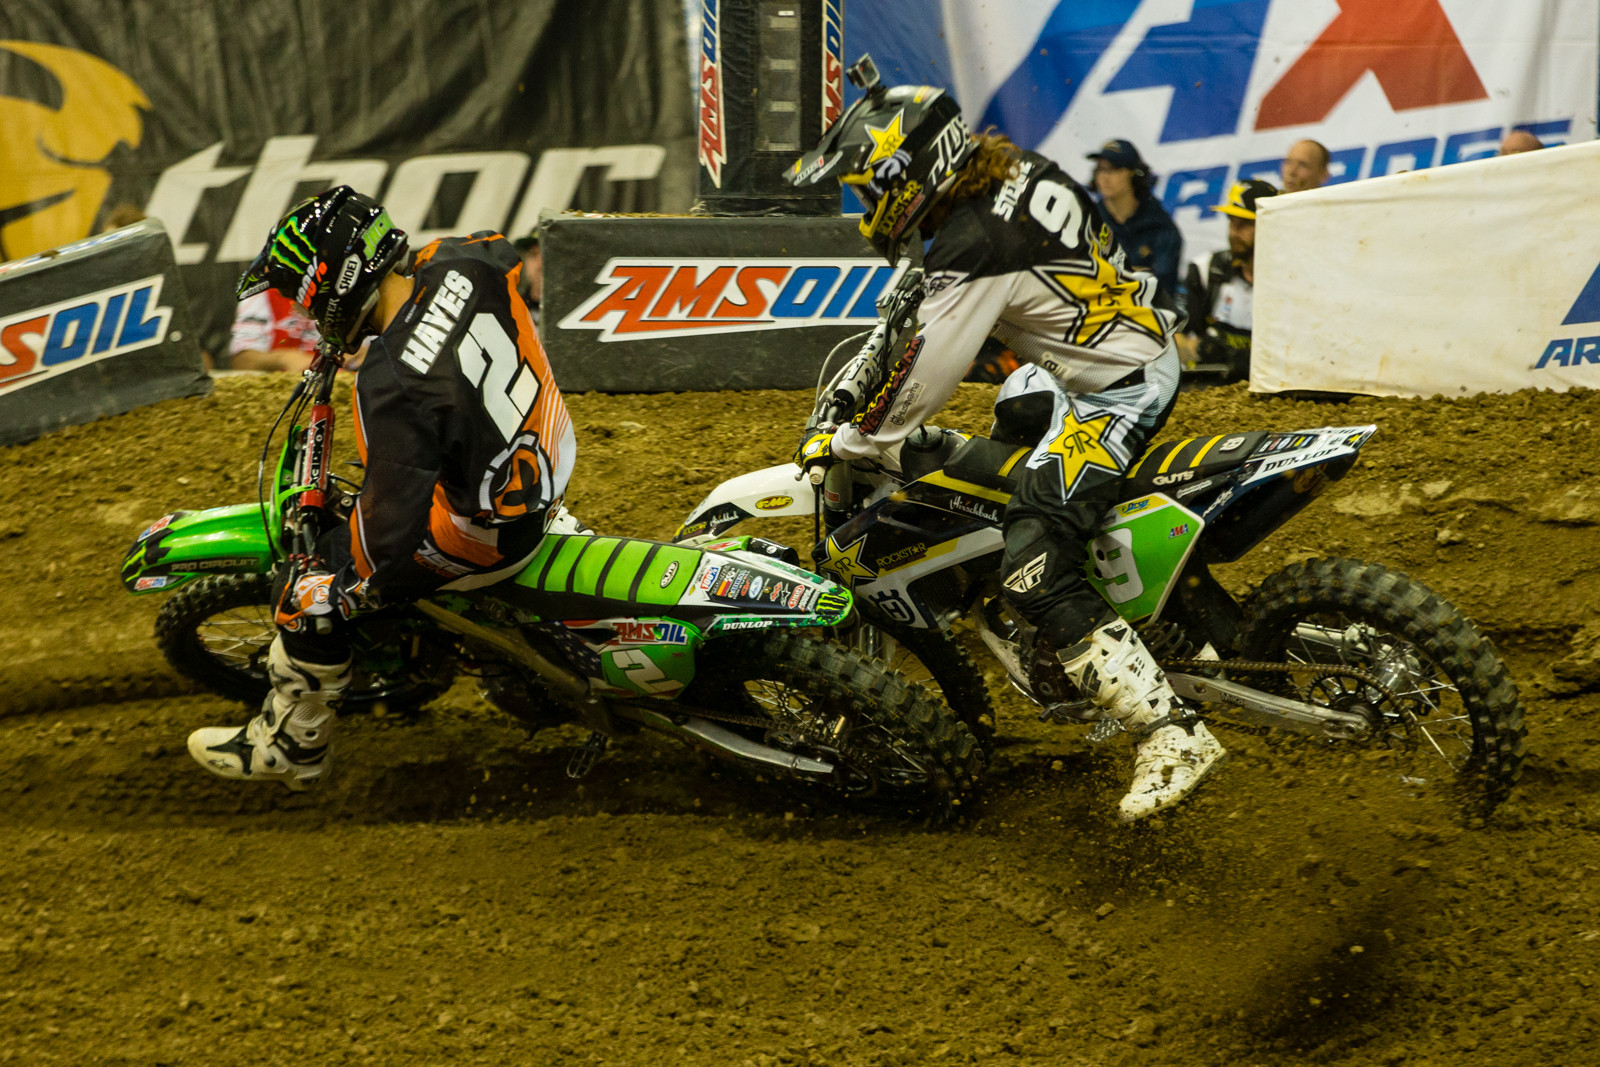 Jacob Hayes and Gared Steinke - Photo Gallery: Ontario Arenacross - Saturday Night - Motocross Pictures - Vital MX